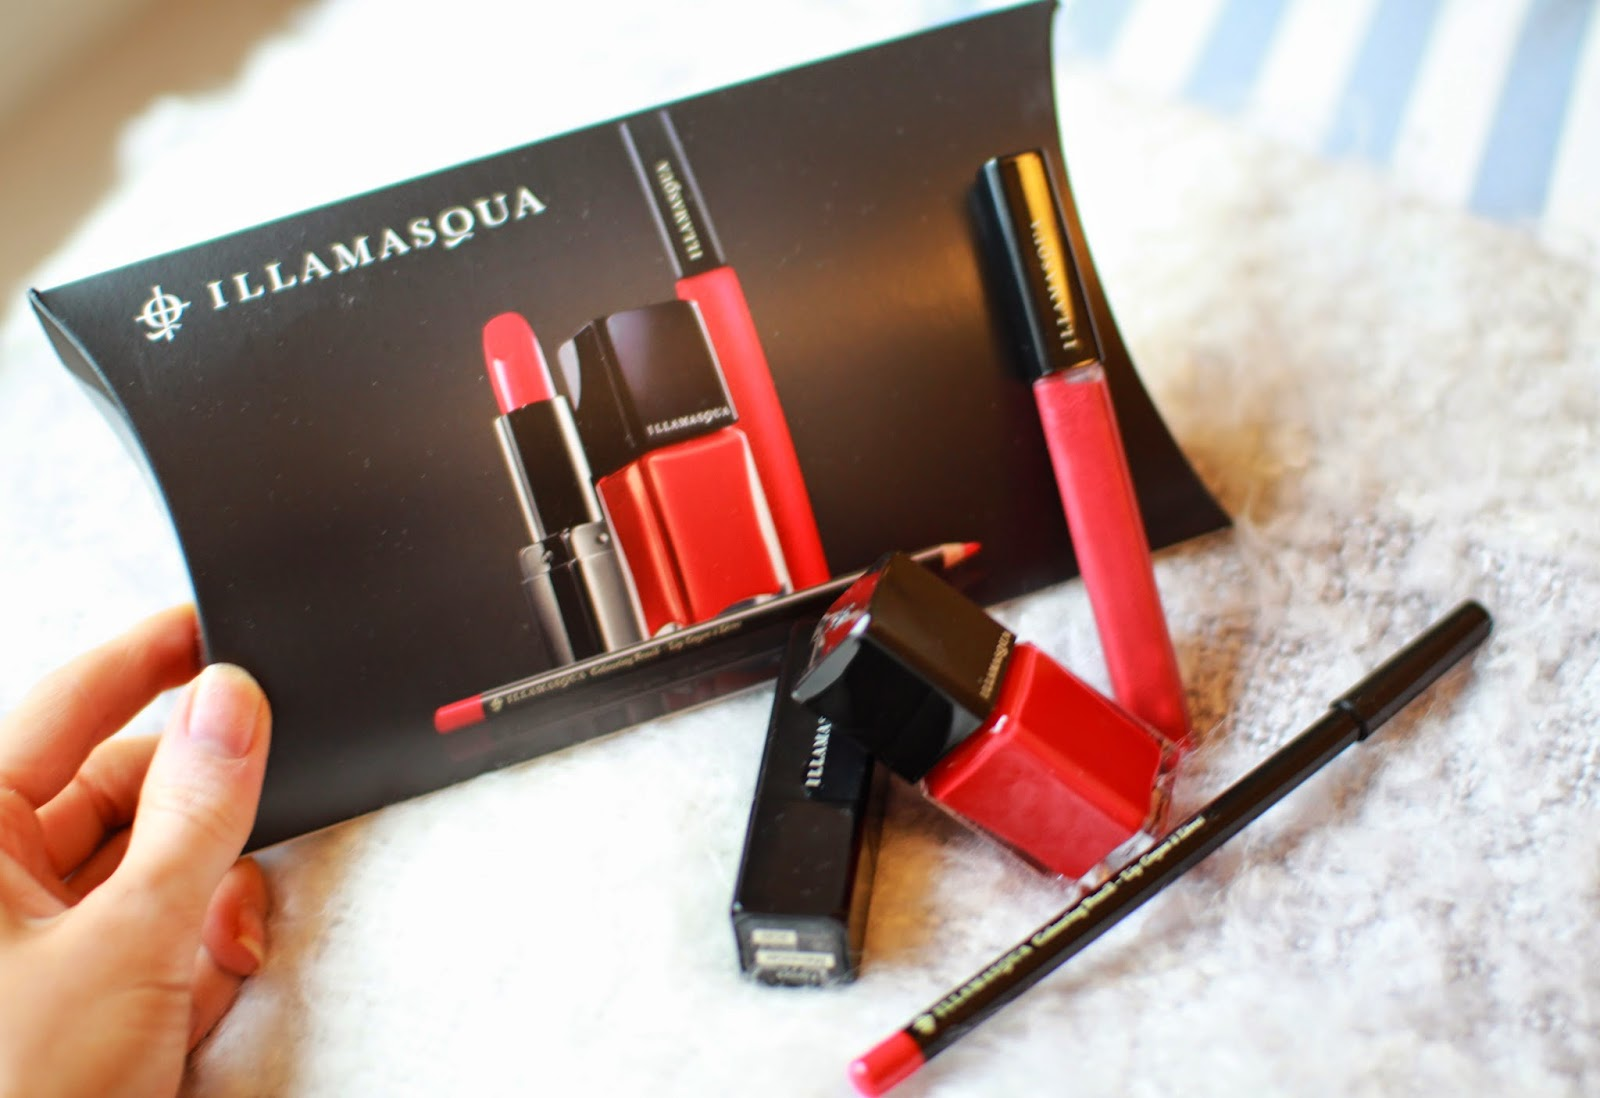 Illamasqua I'm the One Collection